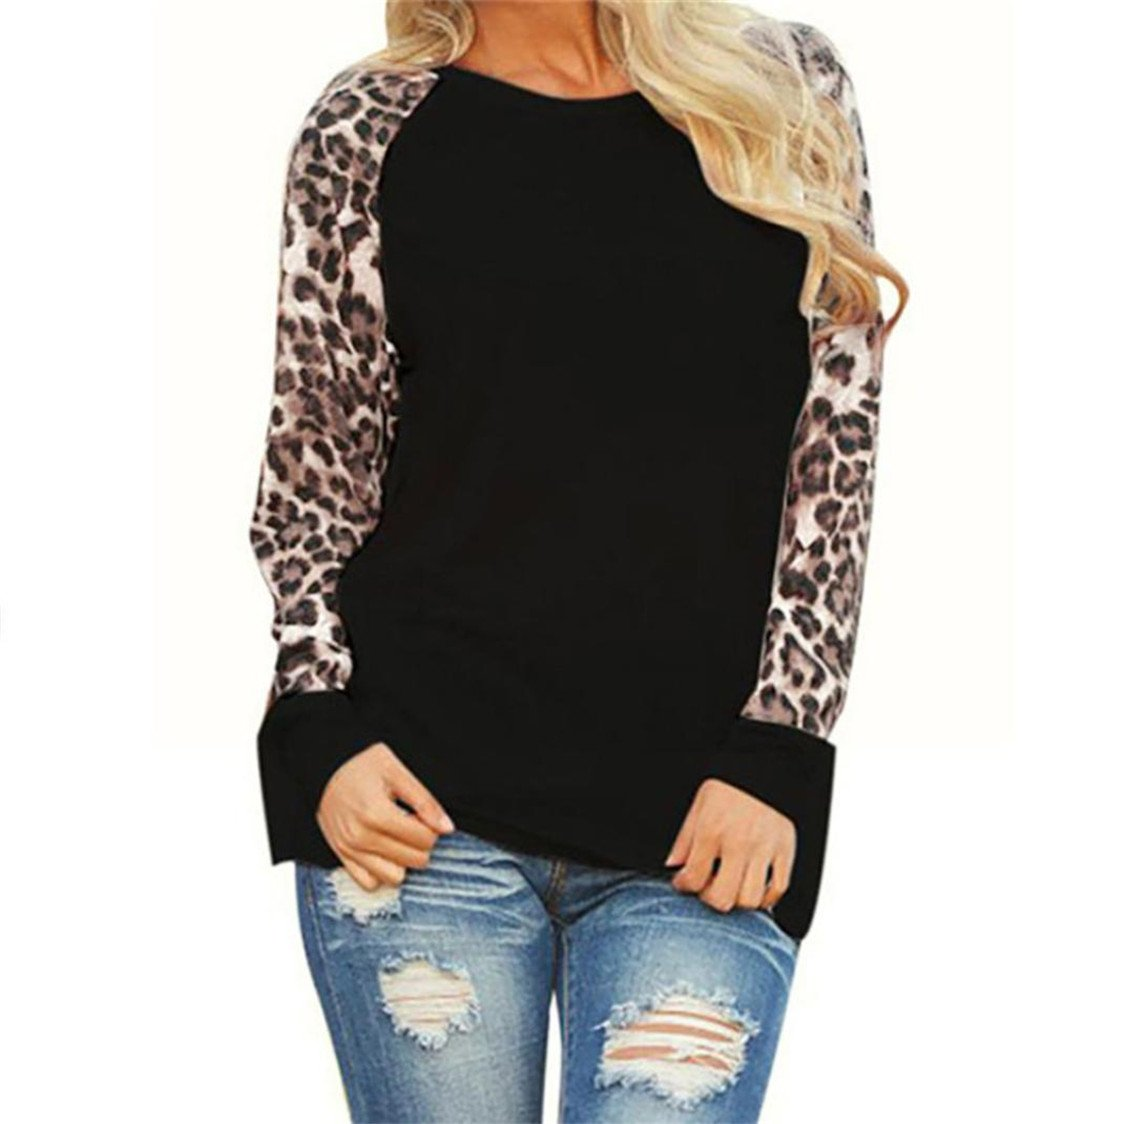 TIFENNY Fashion Womens Long Sleeve T-Shirt, Ladies Plus Size Leopard Blouse Oversize Tops(Gray,M) (XXL, Black)